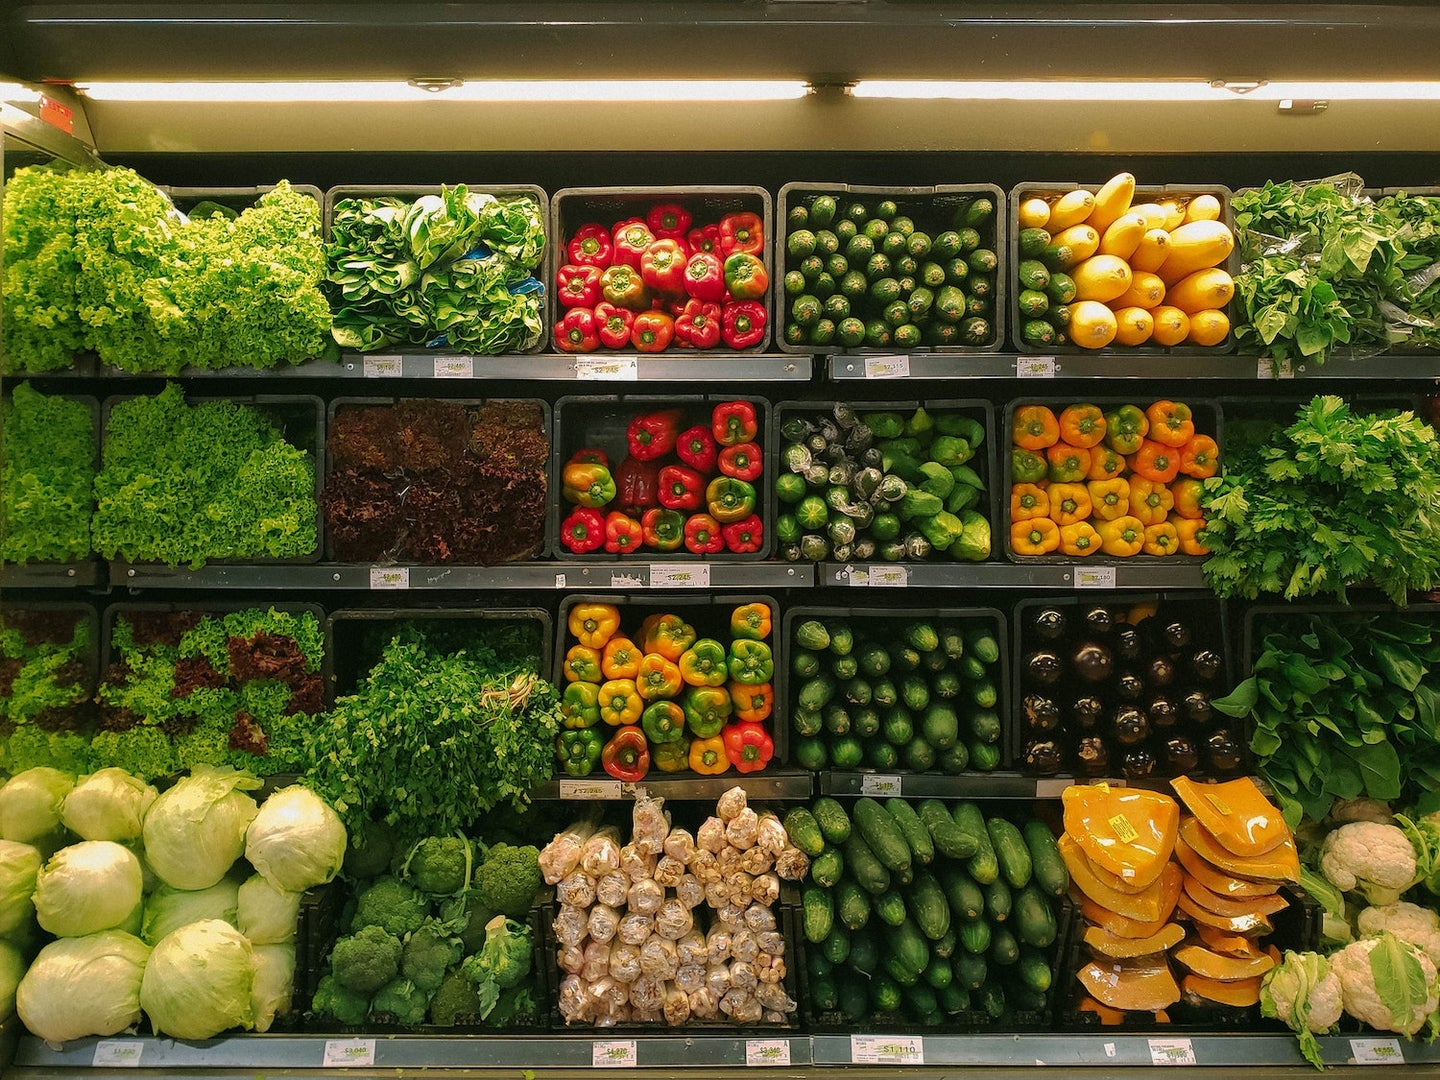 Produce at grocery store